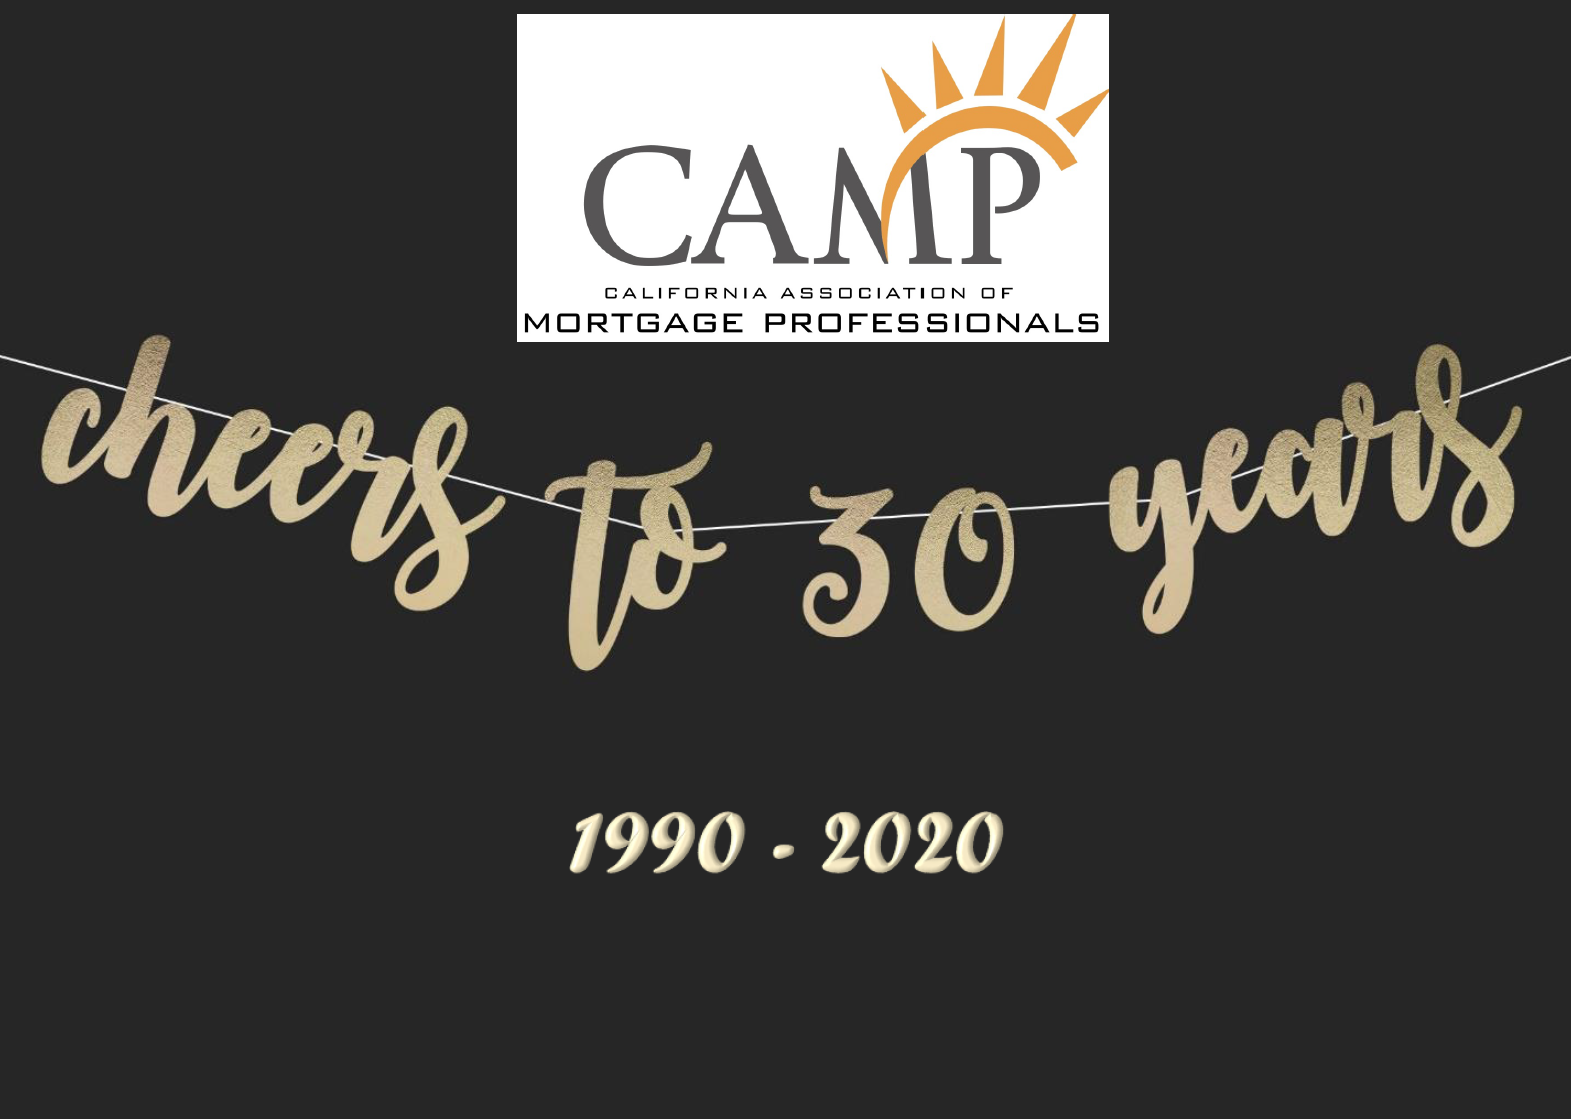 Camp Cheers to 30 years logo